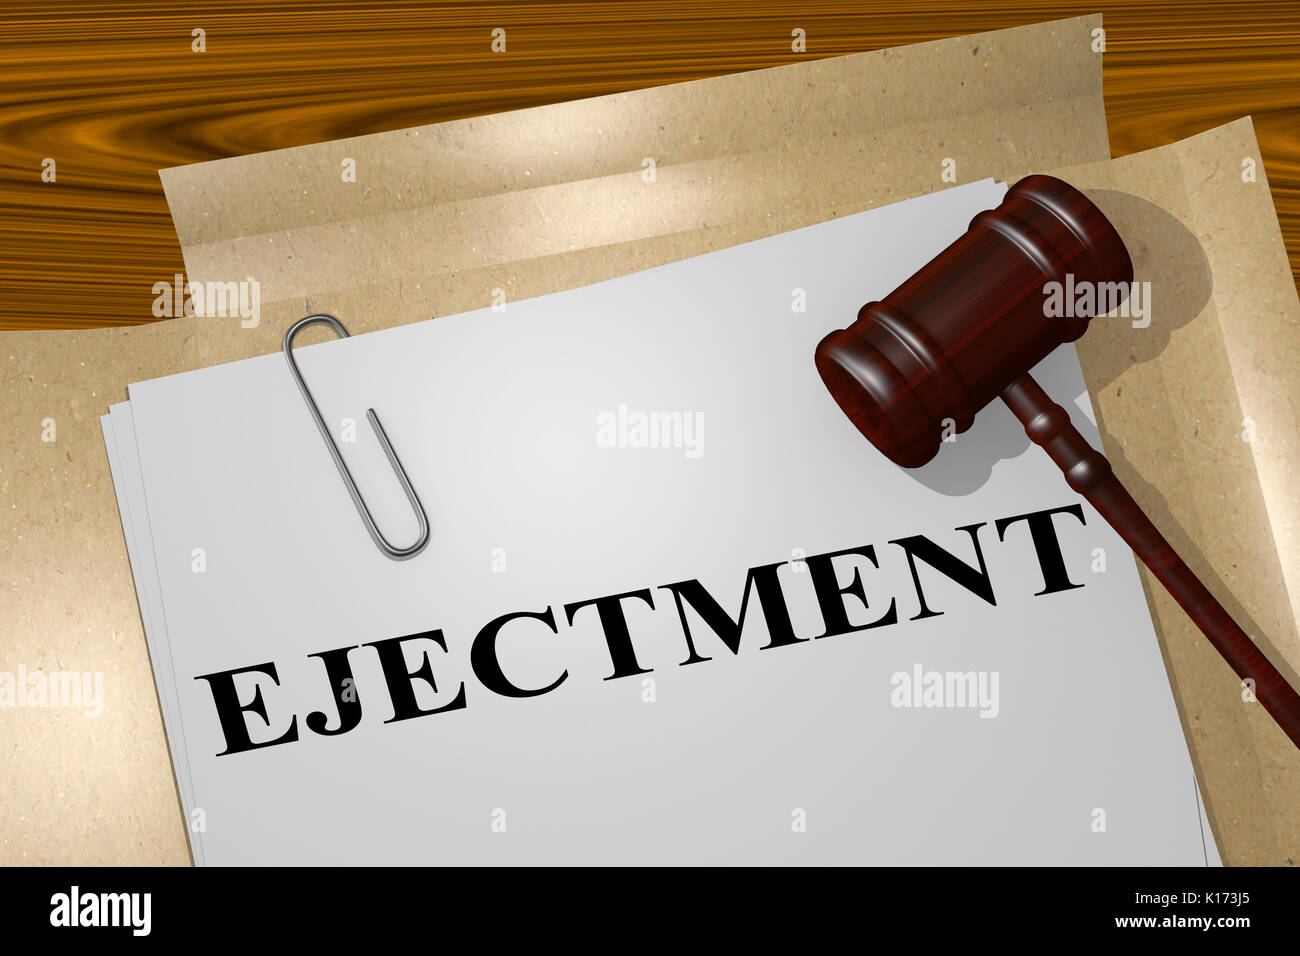 3D illustration of 'EJECTMENT' title on legal document - Stock Image